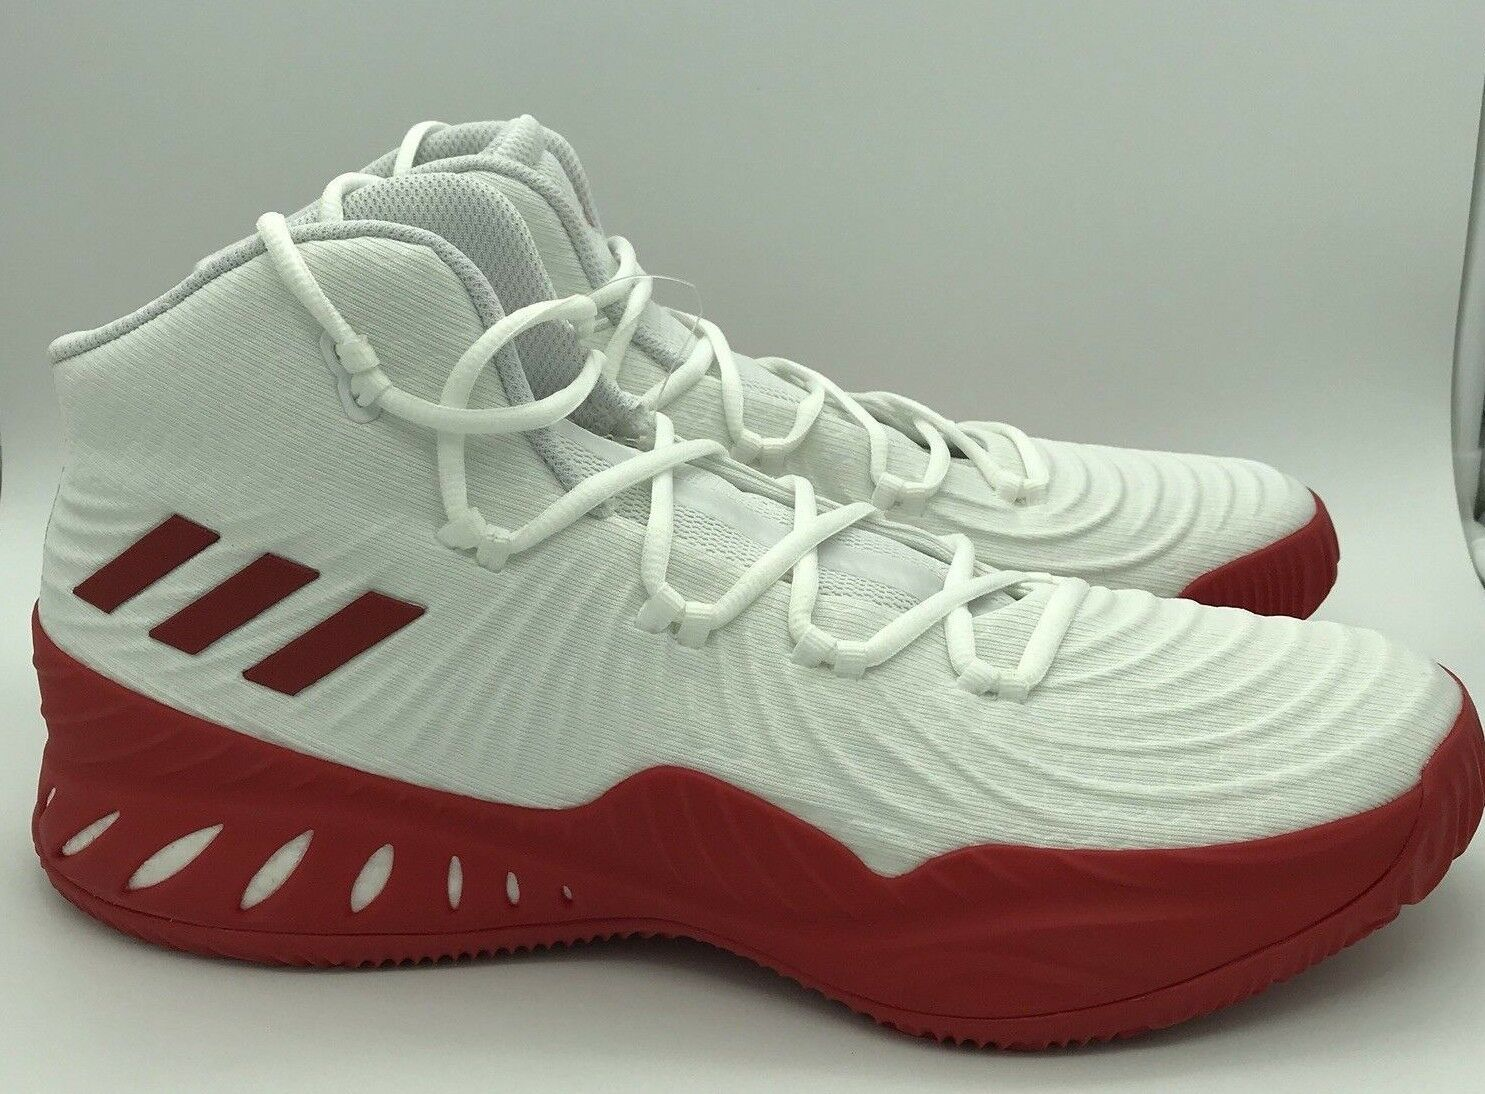 Adidas Crazy Explosive 2017 Basketball shoes Style CQ1527 MSRP